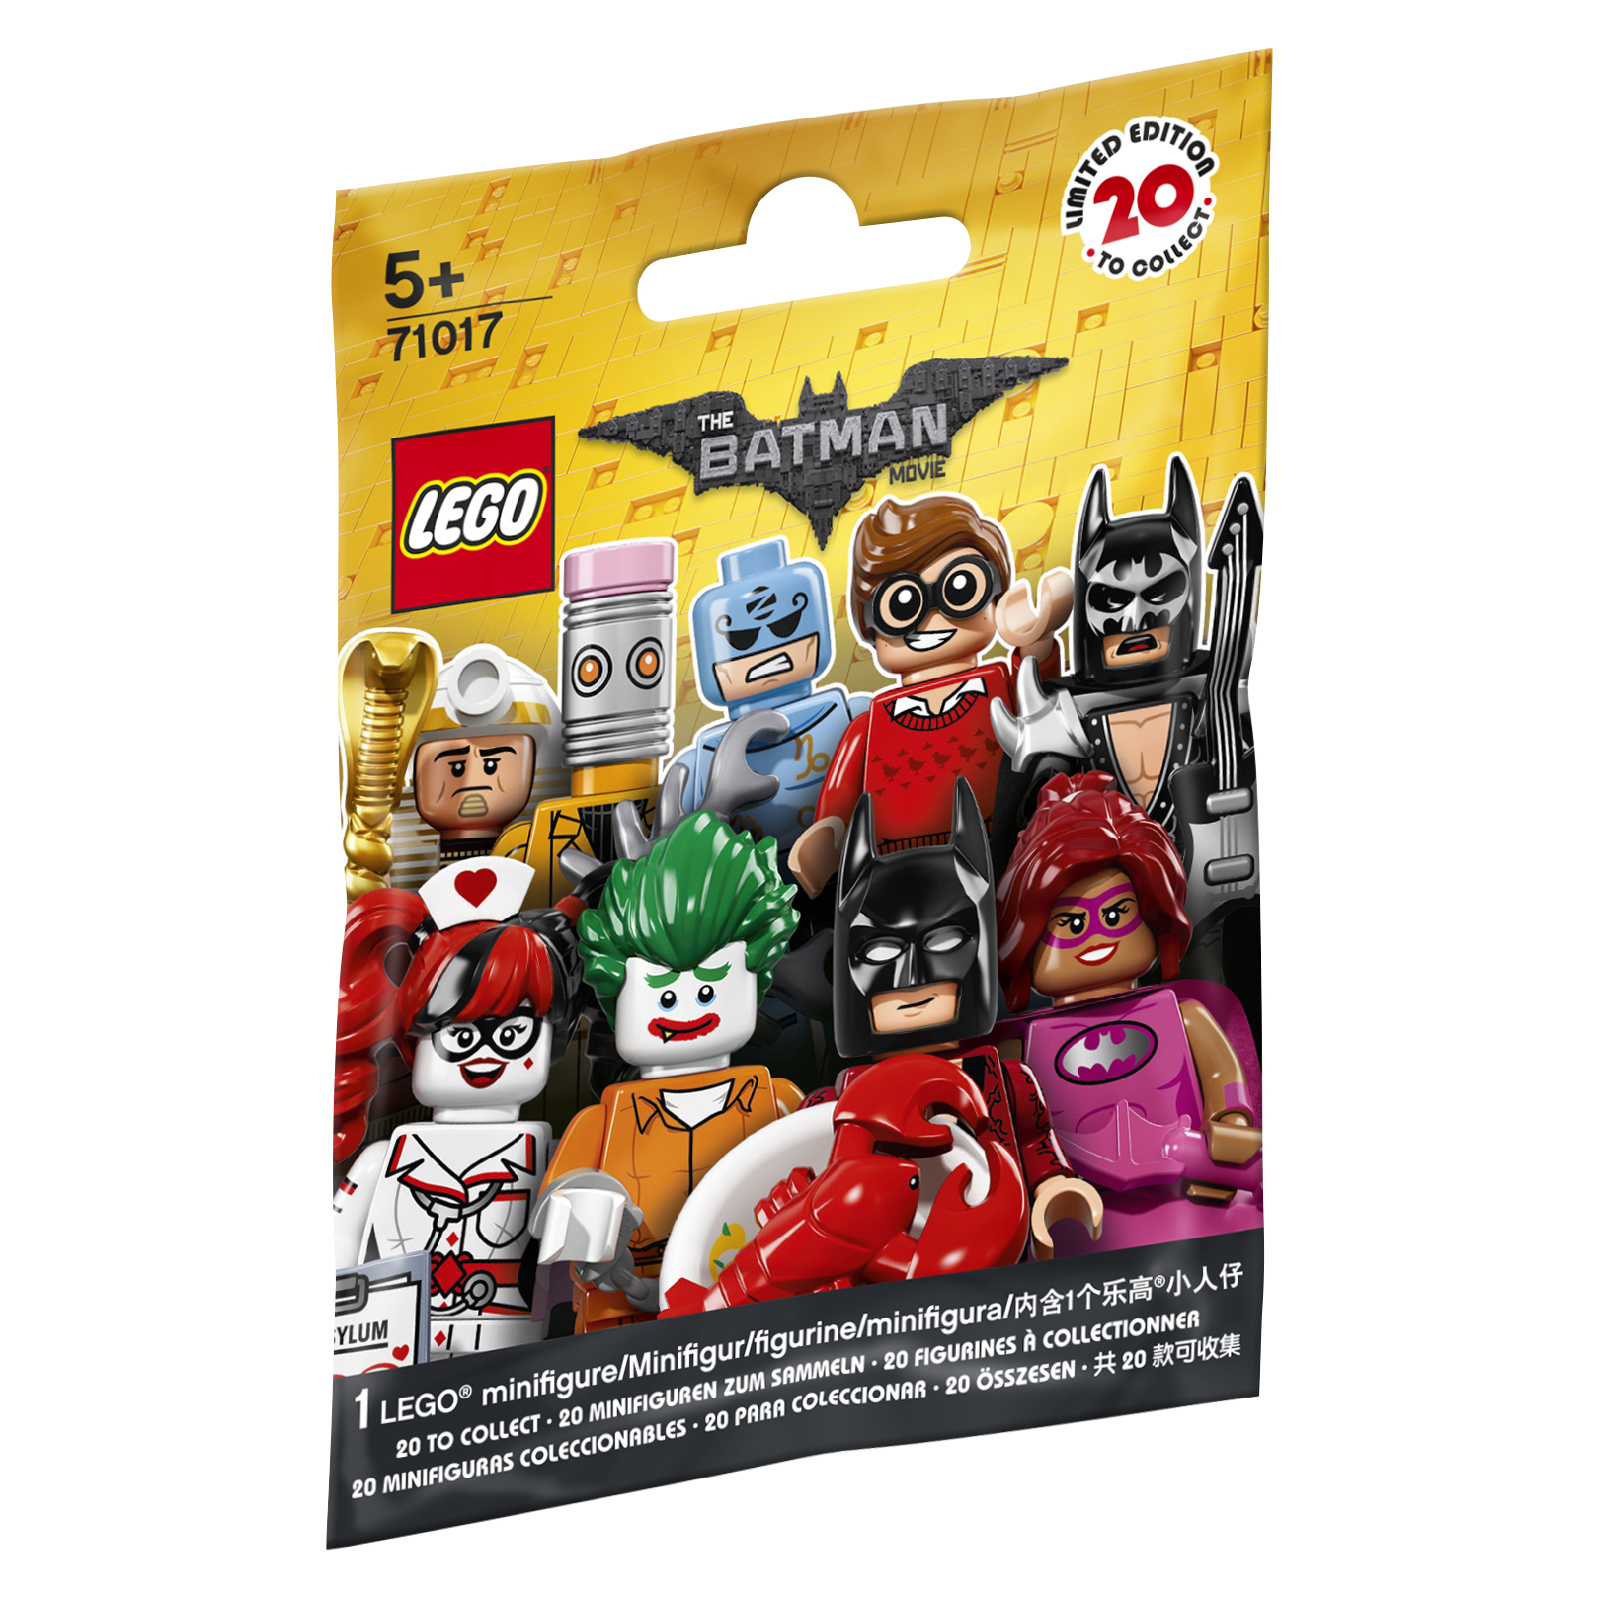 LEGO Baukästen & Sets Lego® 71017 Minifiguren The Batman Movie